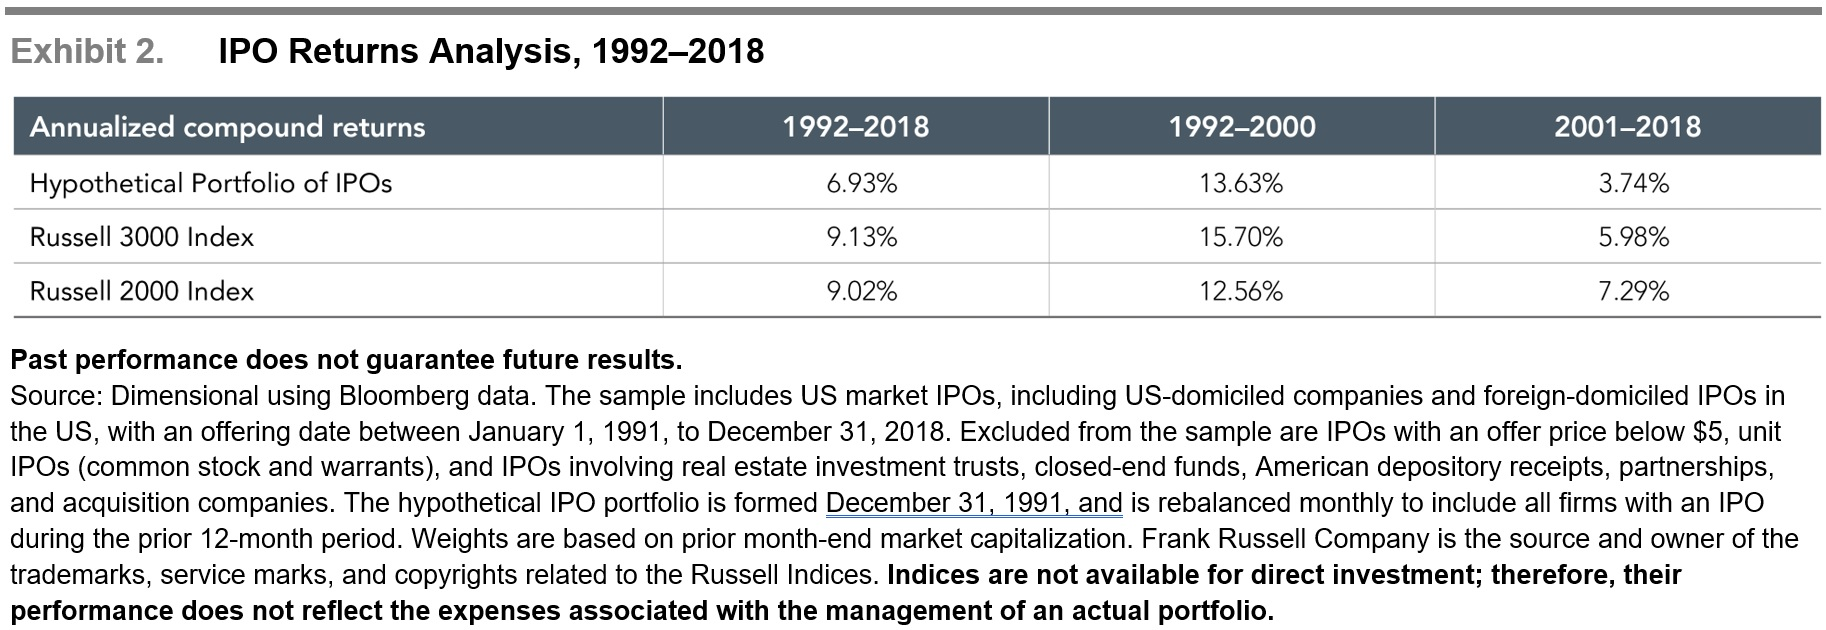 IPO Returns Analysis 1992-2018